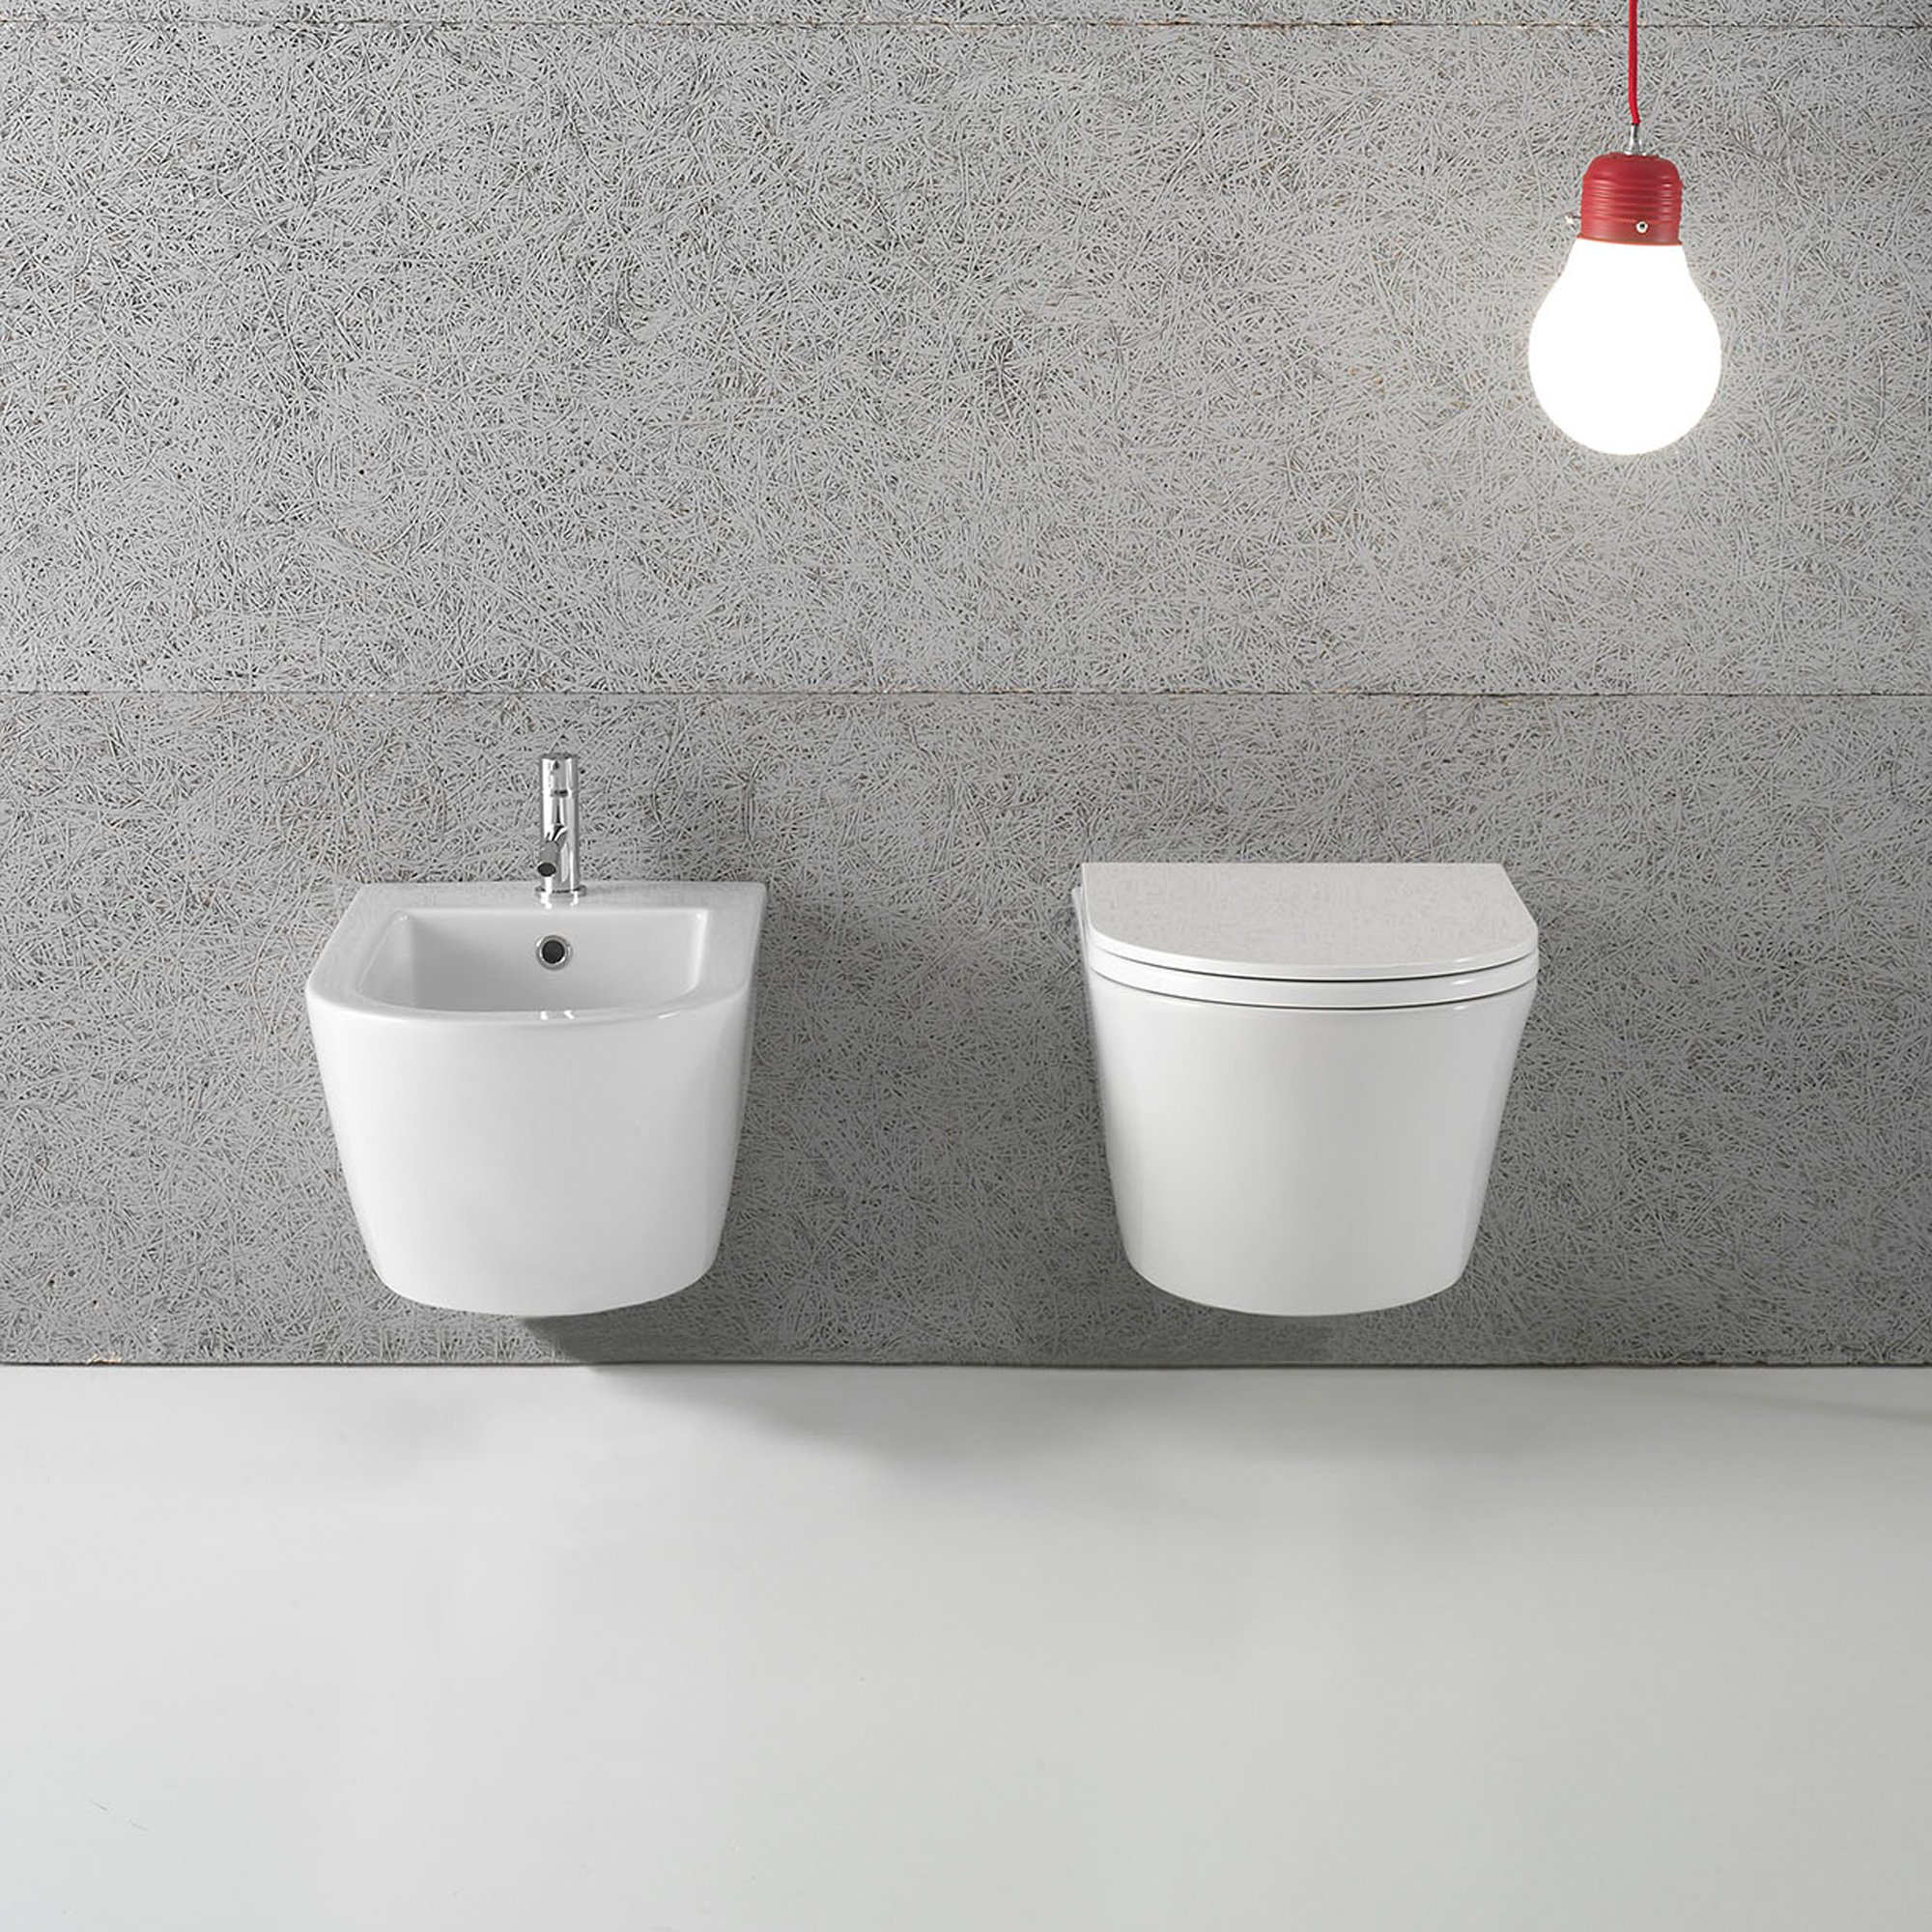 FOS02 Forty3 Wall hung WC